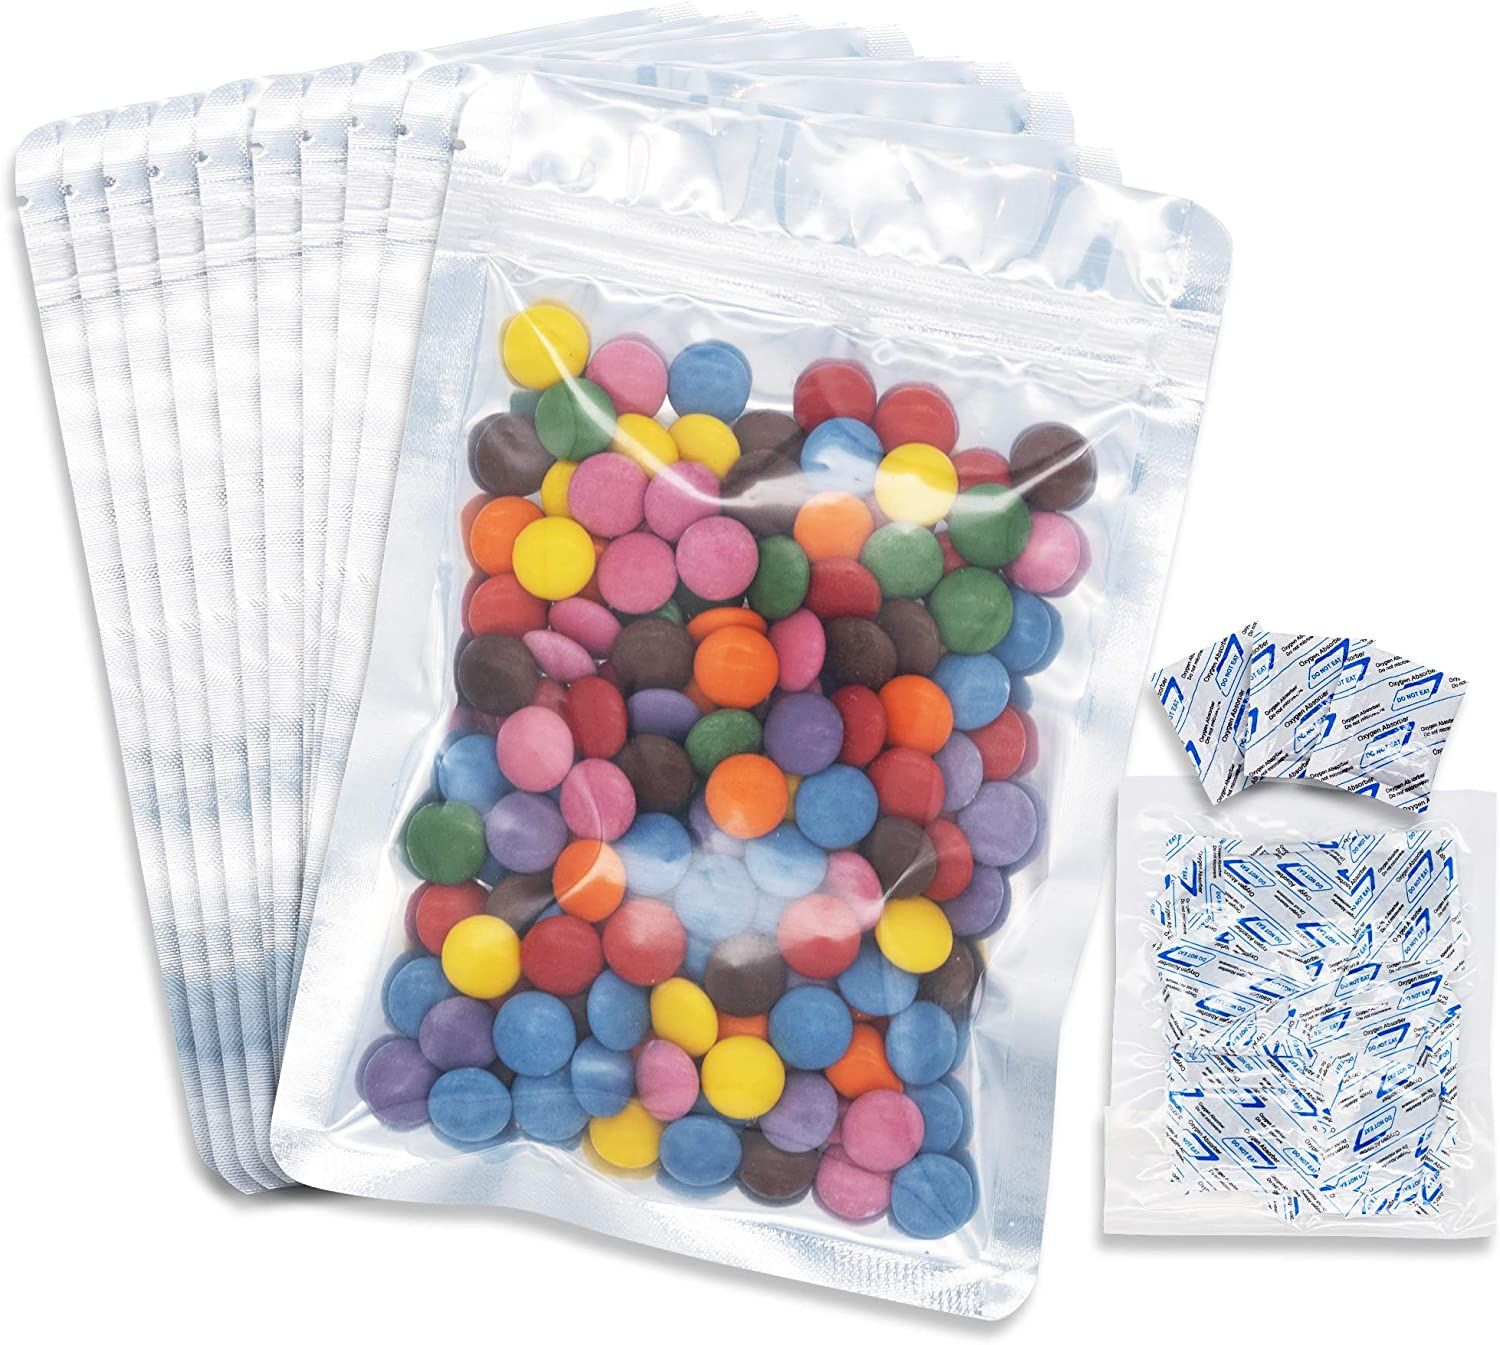 100 pcs Ziplock Mylar Bags for Food Storage - 5.5